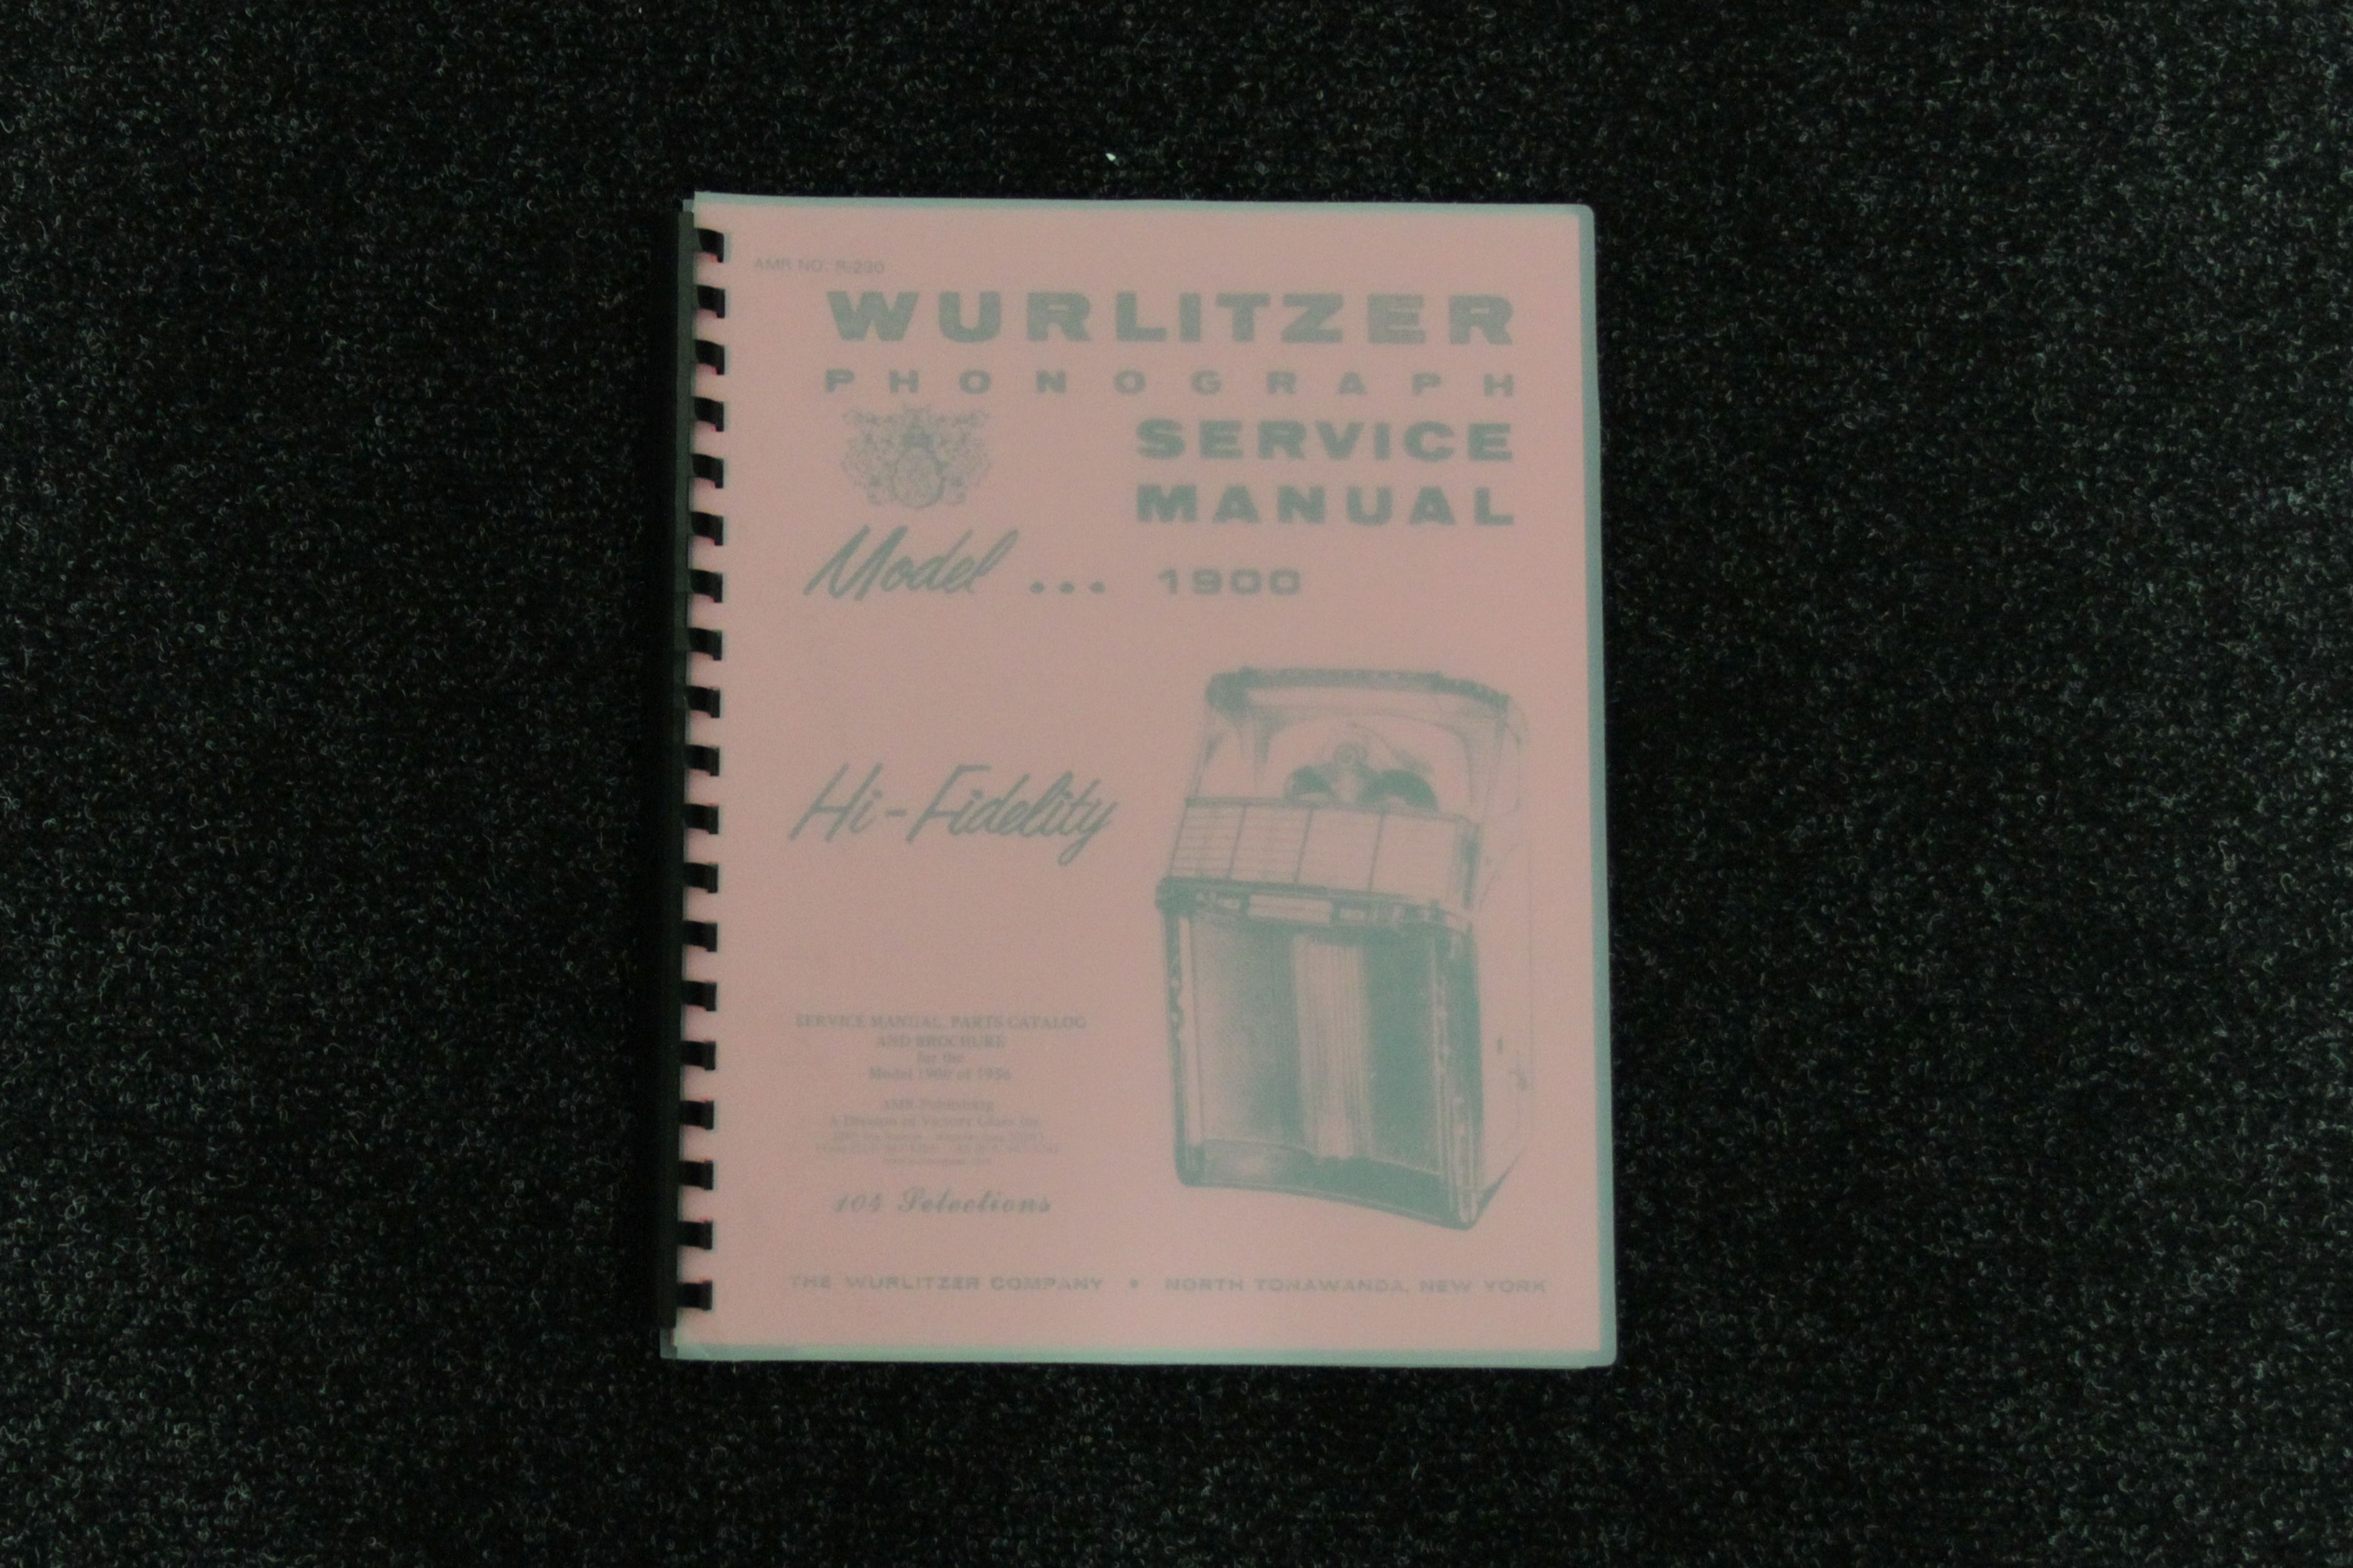 Wurlitzer Service Manual 1900